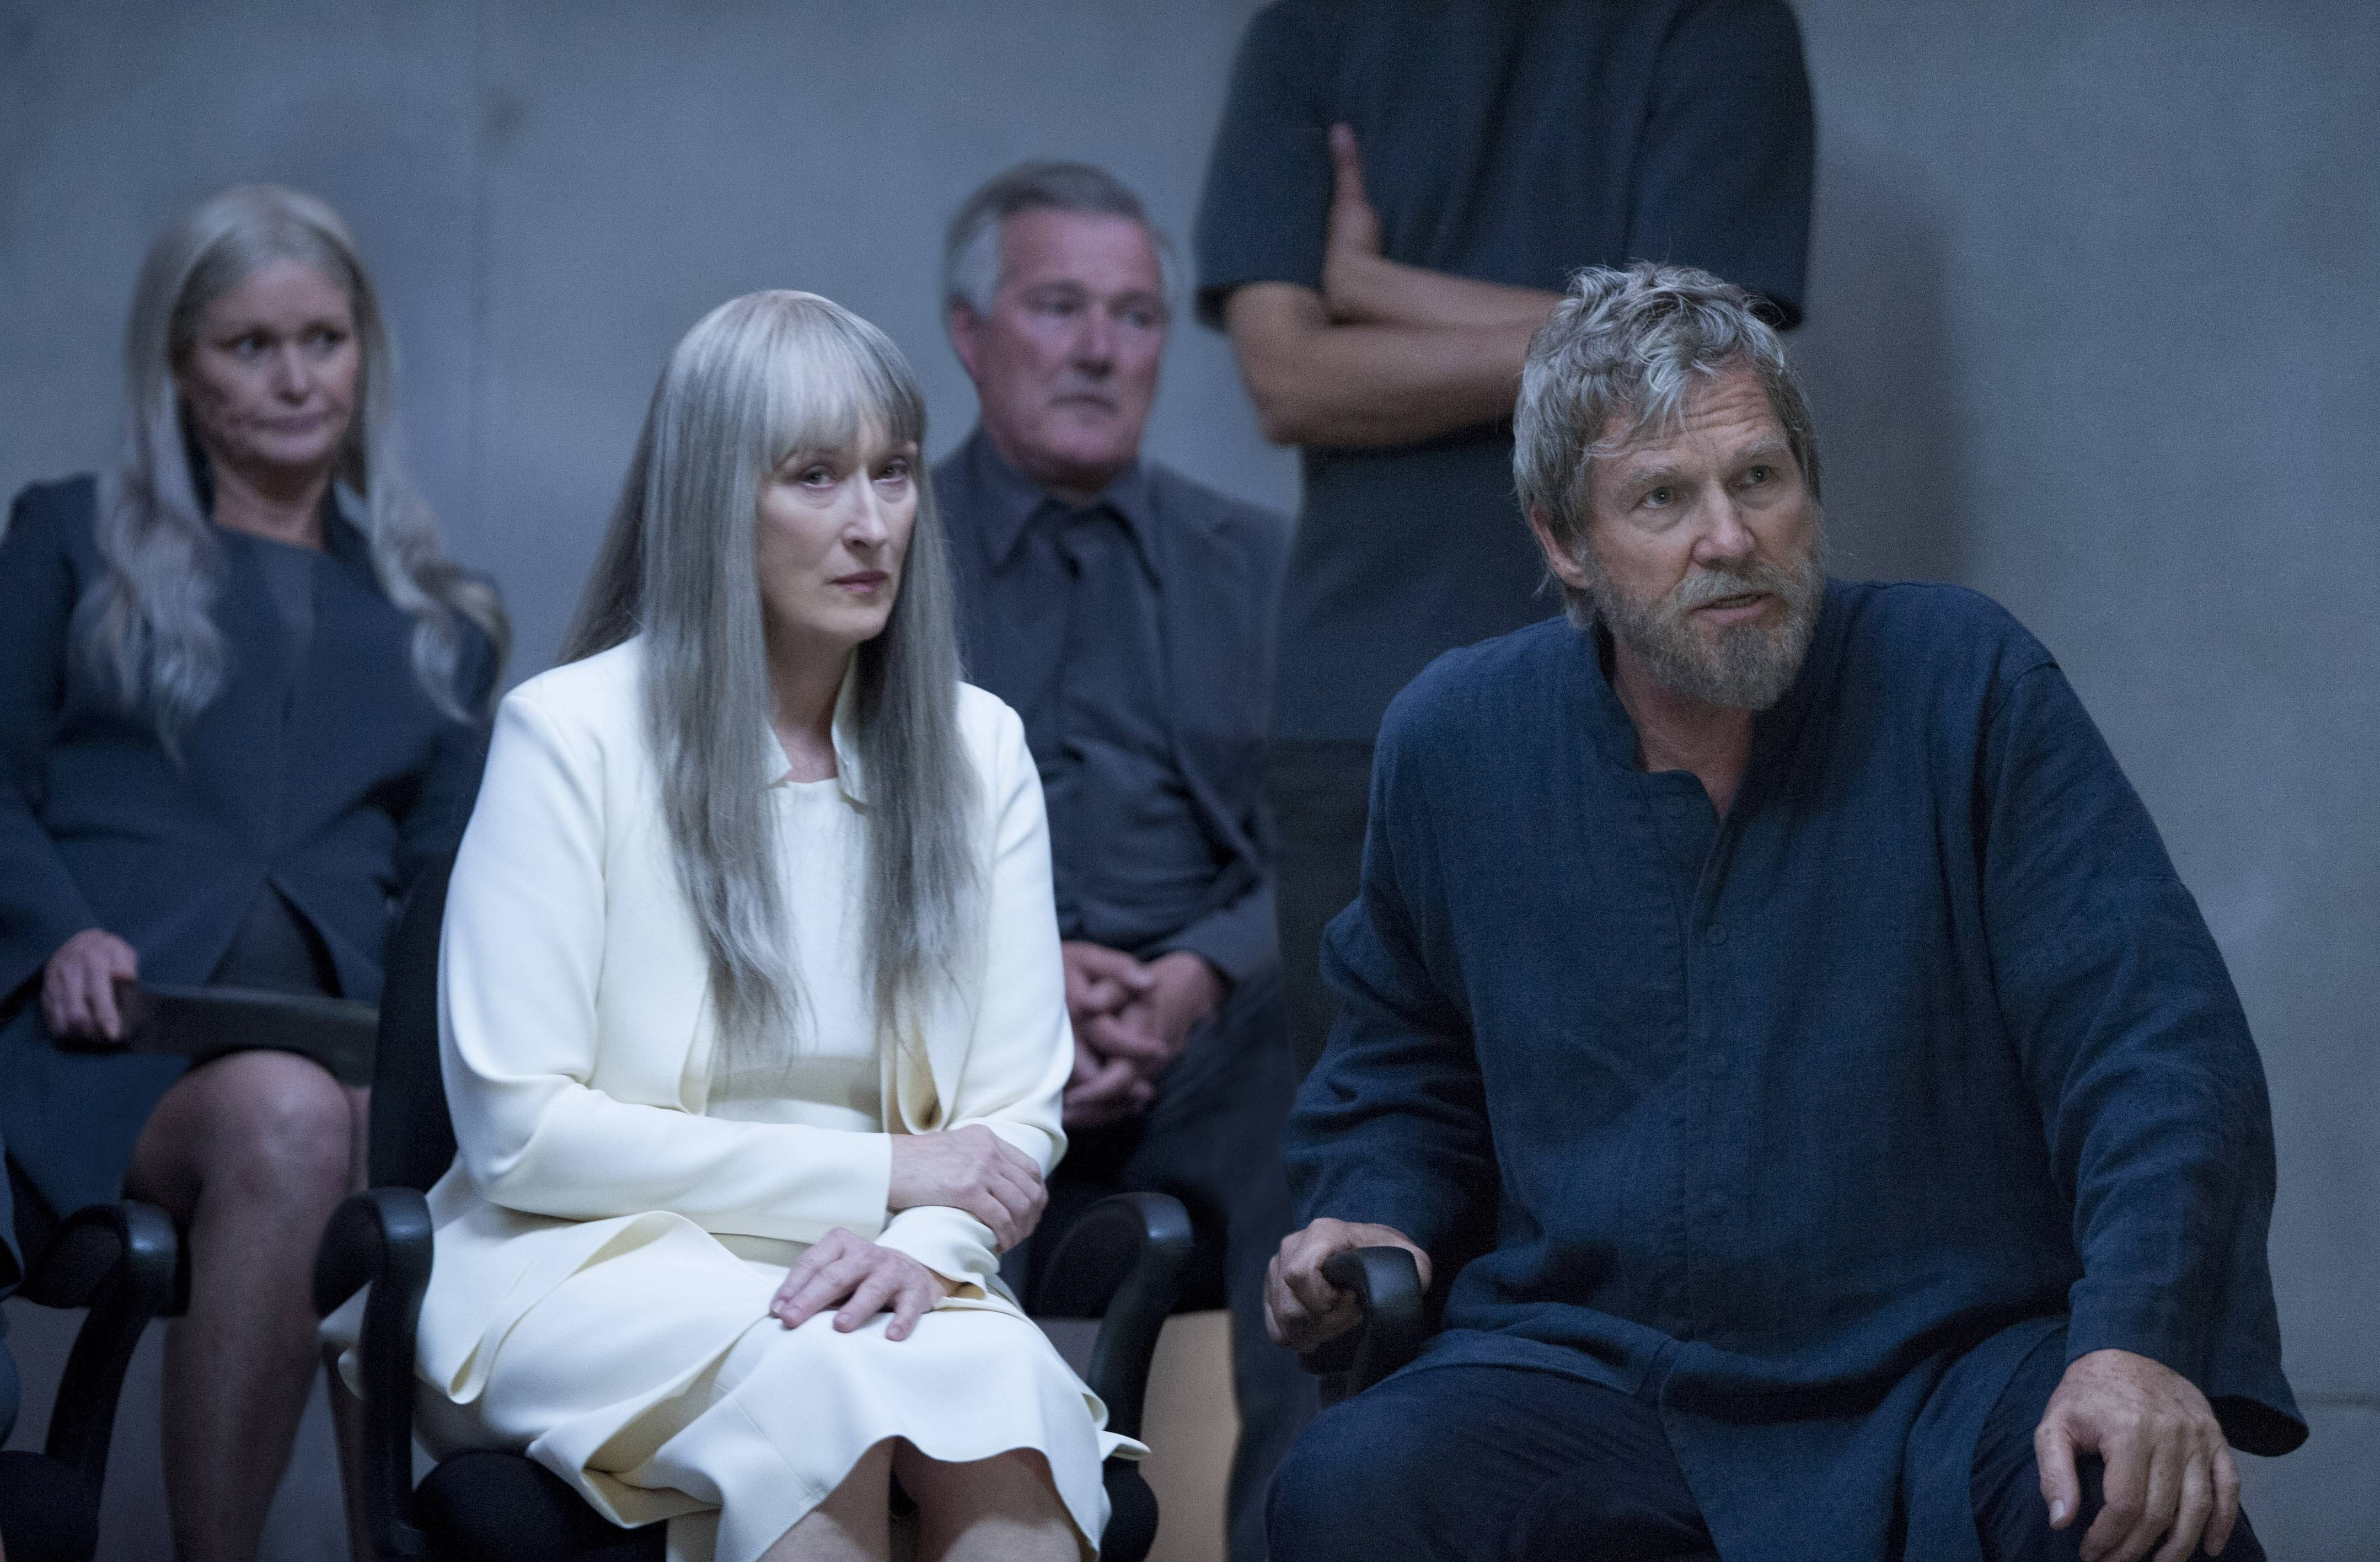 "Jeff Bridges, who stars with Meryl Streep in ""The Giver,"" who is a co-producer on the movie, wanted to do the movie 18 years ago as a family project. The movie has finally come to fruition on the big screen."